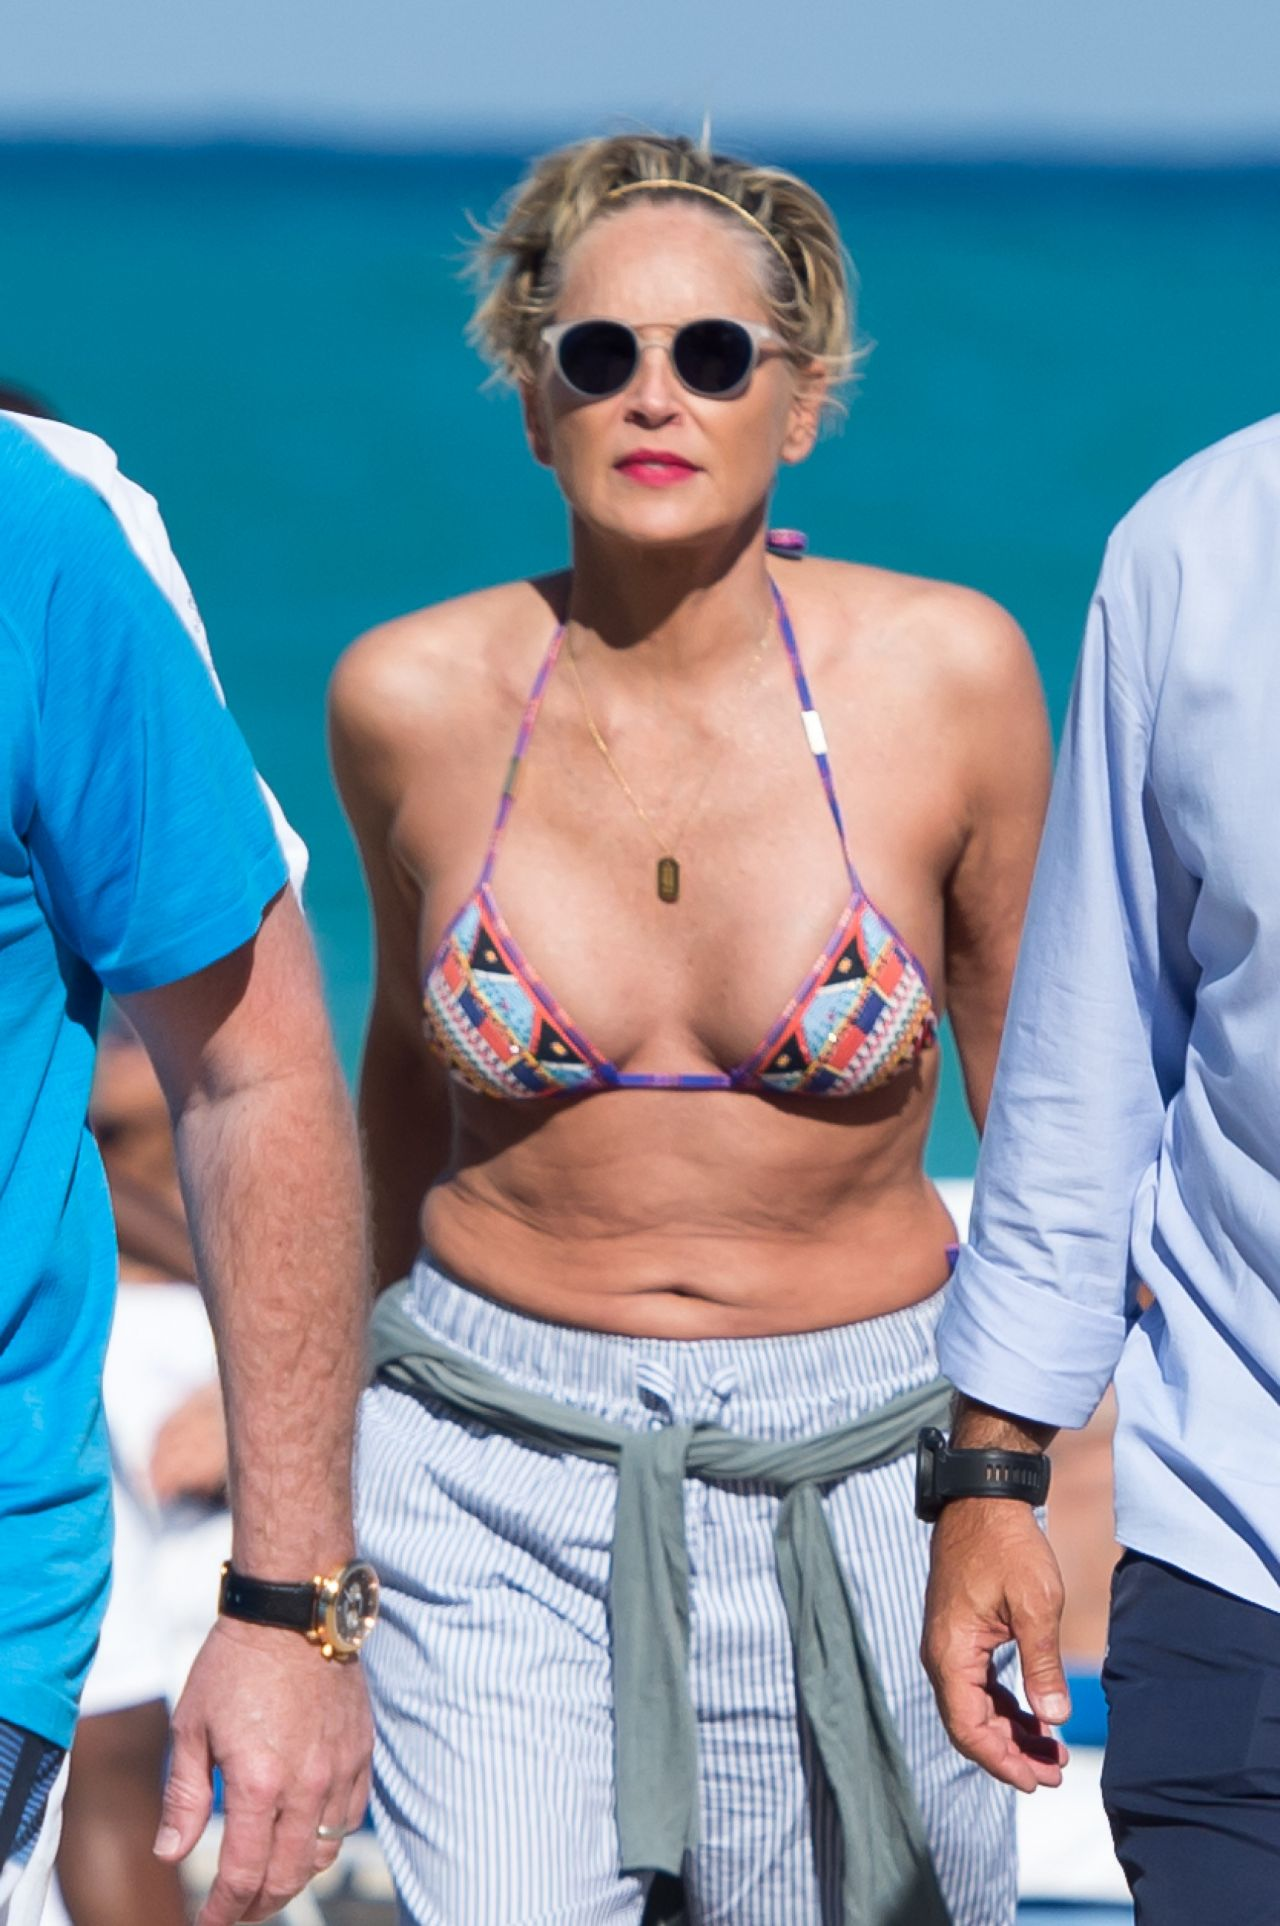 Sharon Stone in Bikini Top with her boyfriend at the beach in Miami Pic 23 of 35